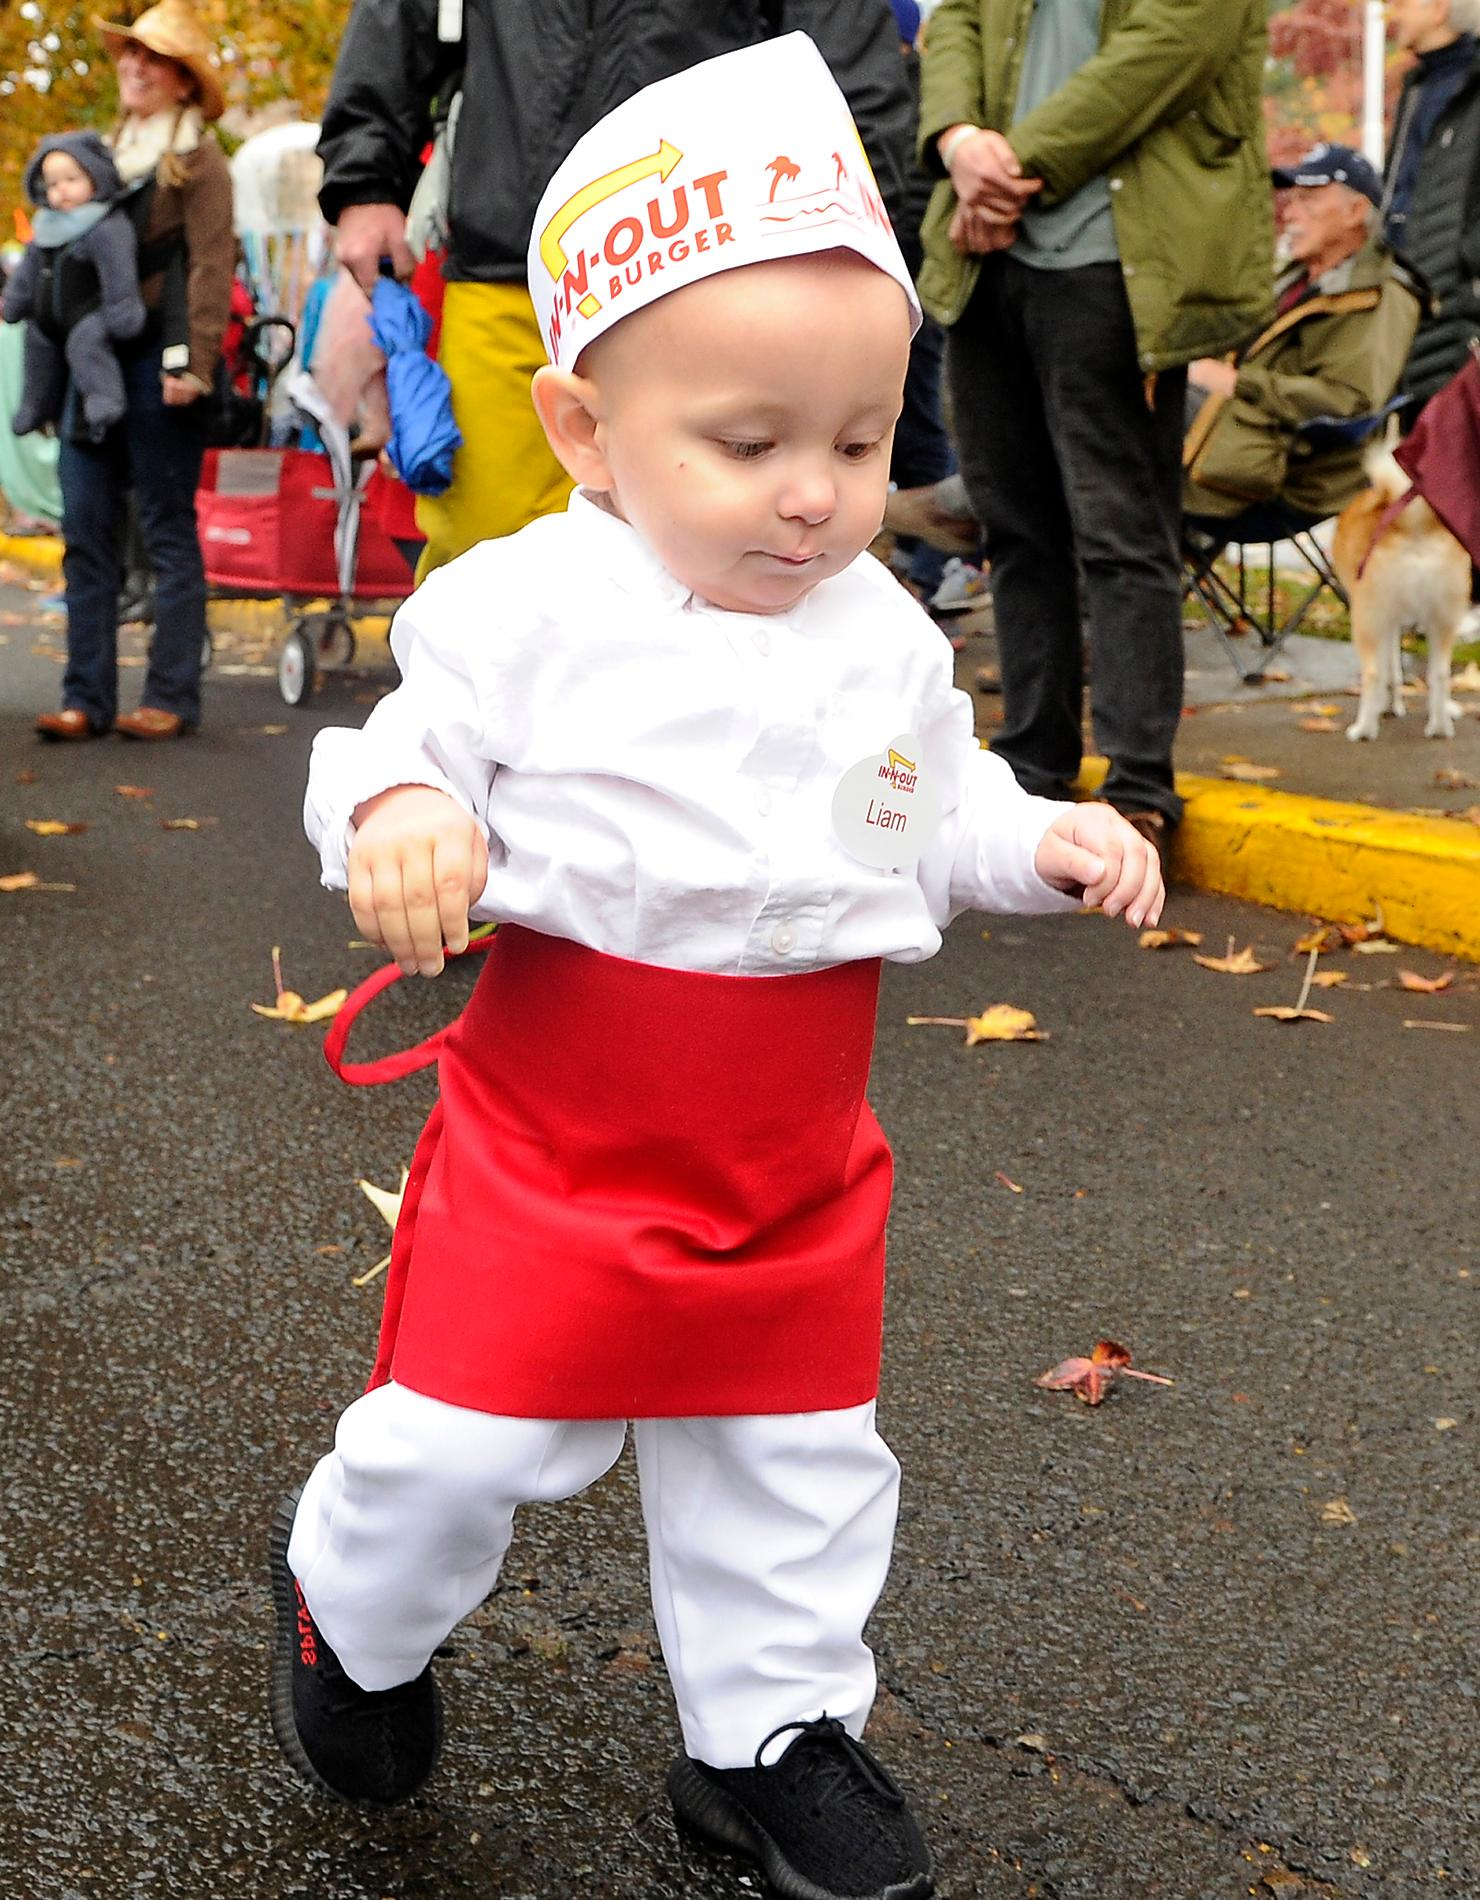 Andy Atkinson / Daily Tidings <br>One-year-old Liam McComas makes his way through downtown Ashland during the annual Halloween parade.